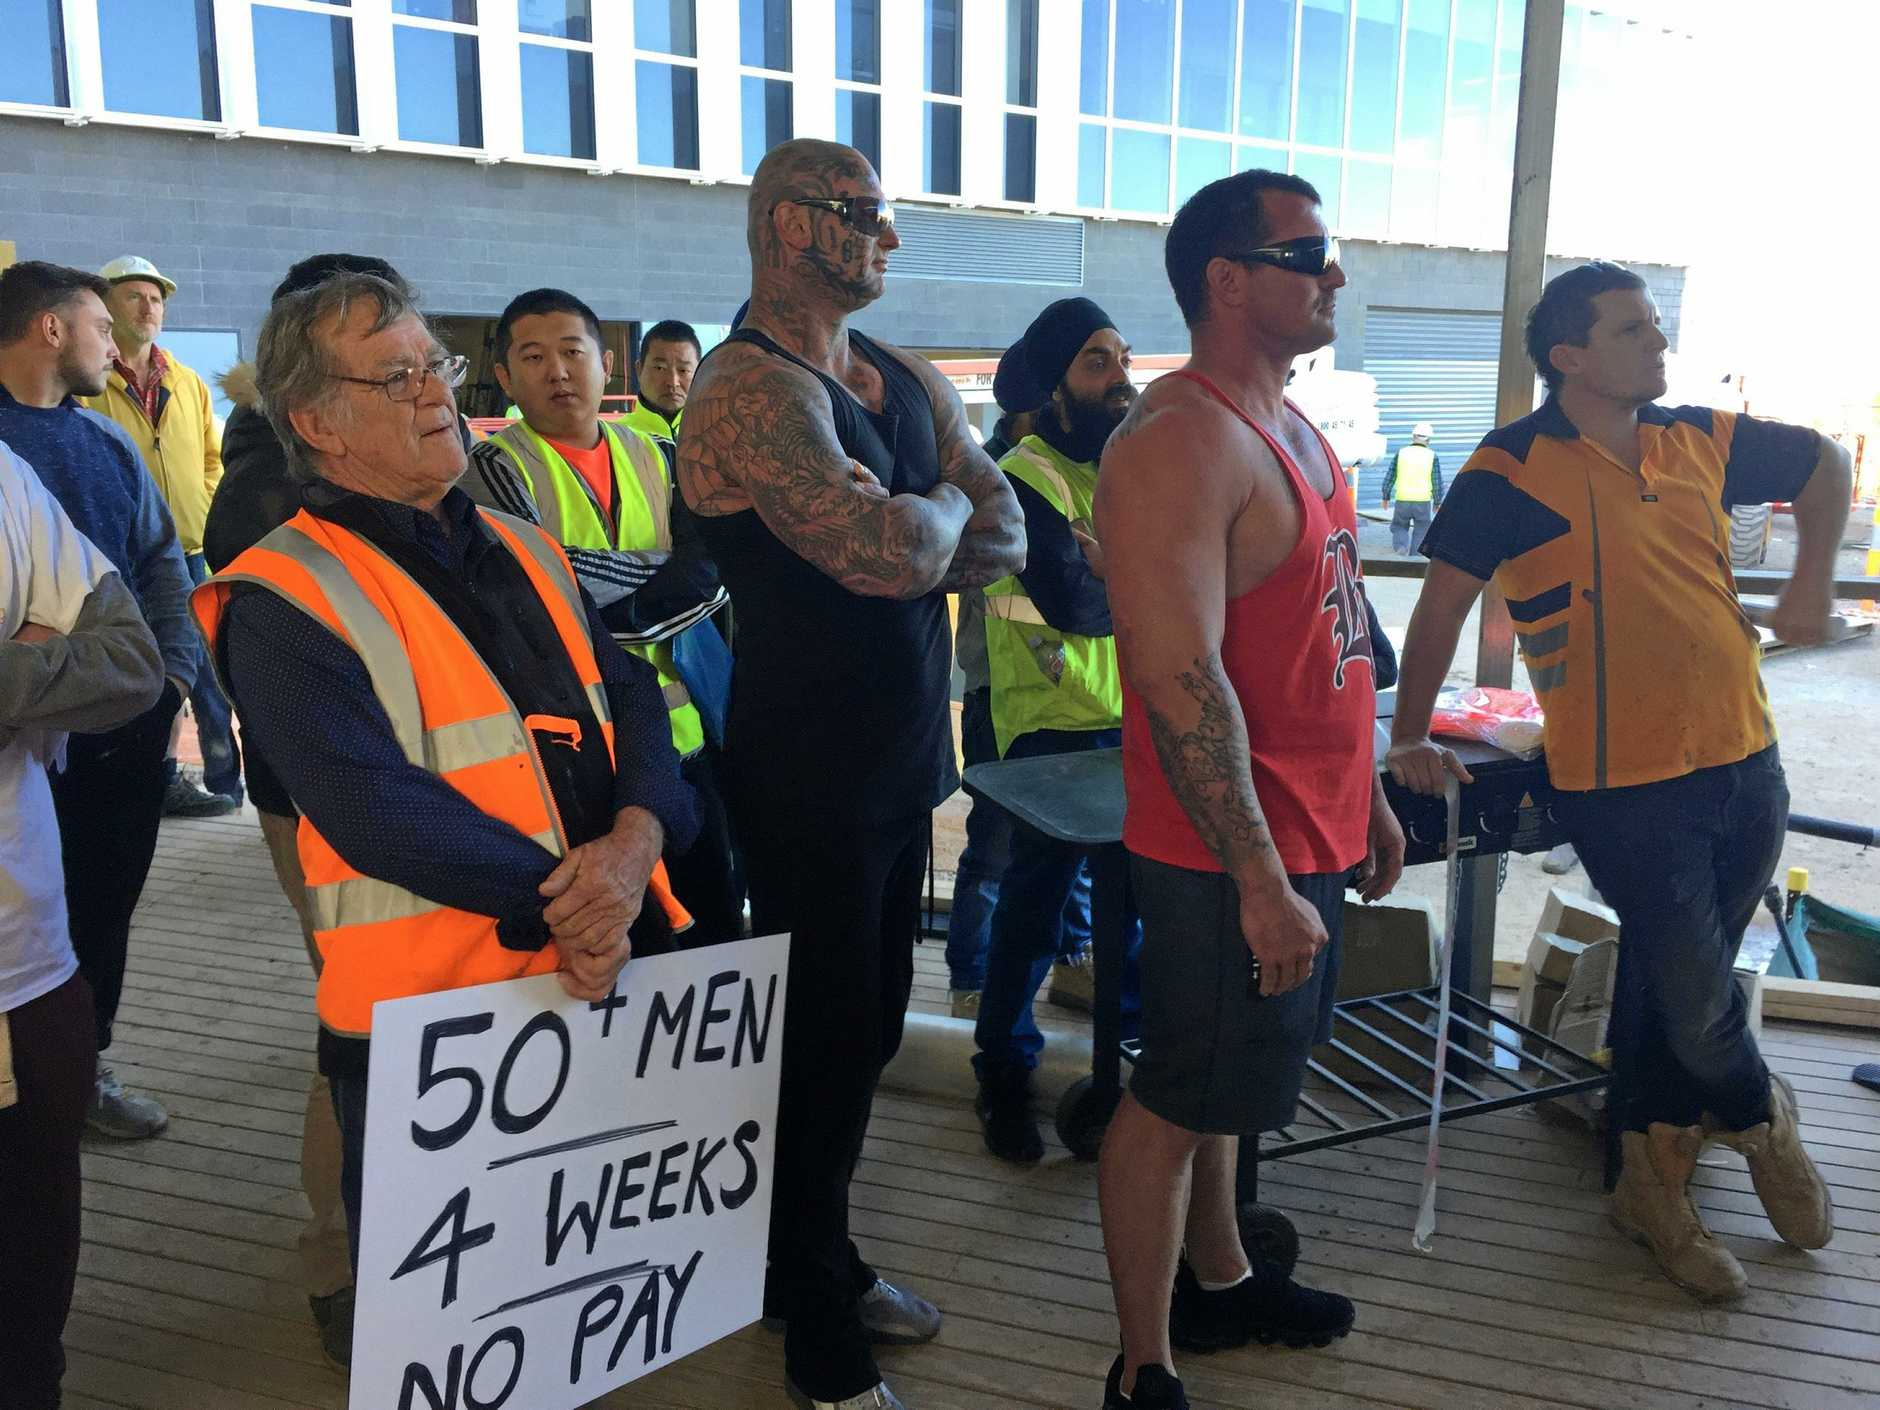 Sub contractors and their employees protesting at not being paid for the labour and material they supply has become an all-to-common occurrence on south east Queensland construction sites.